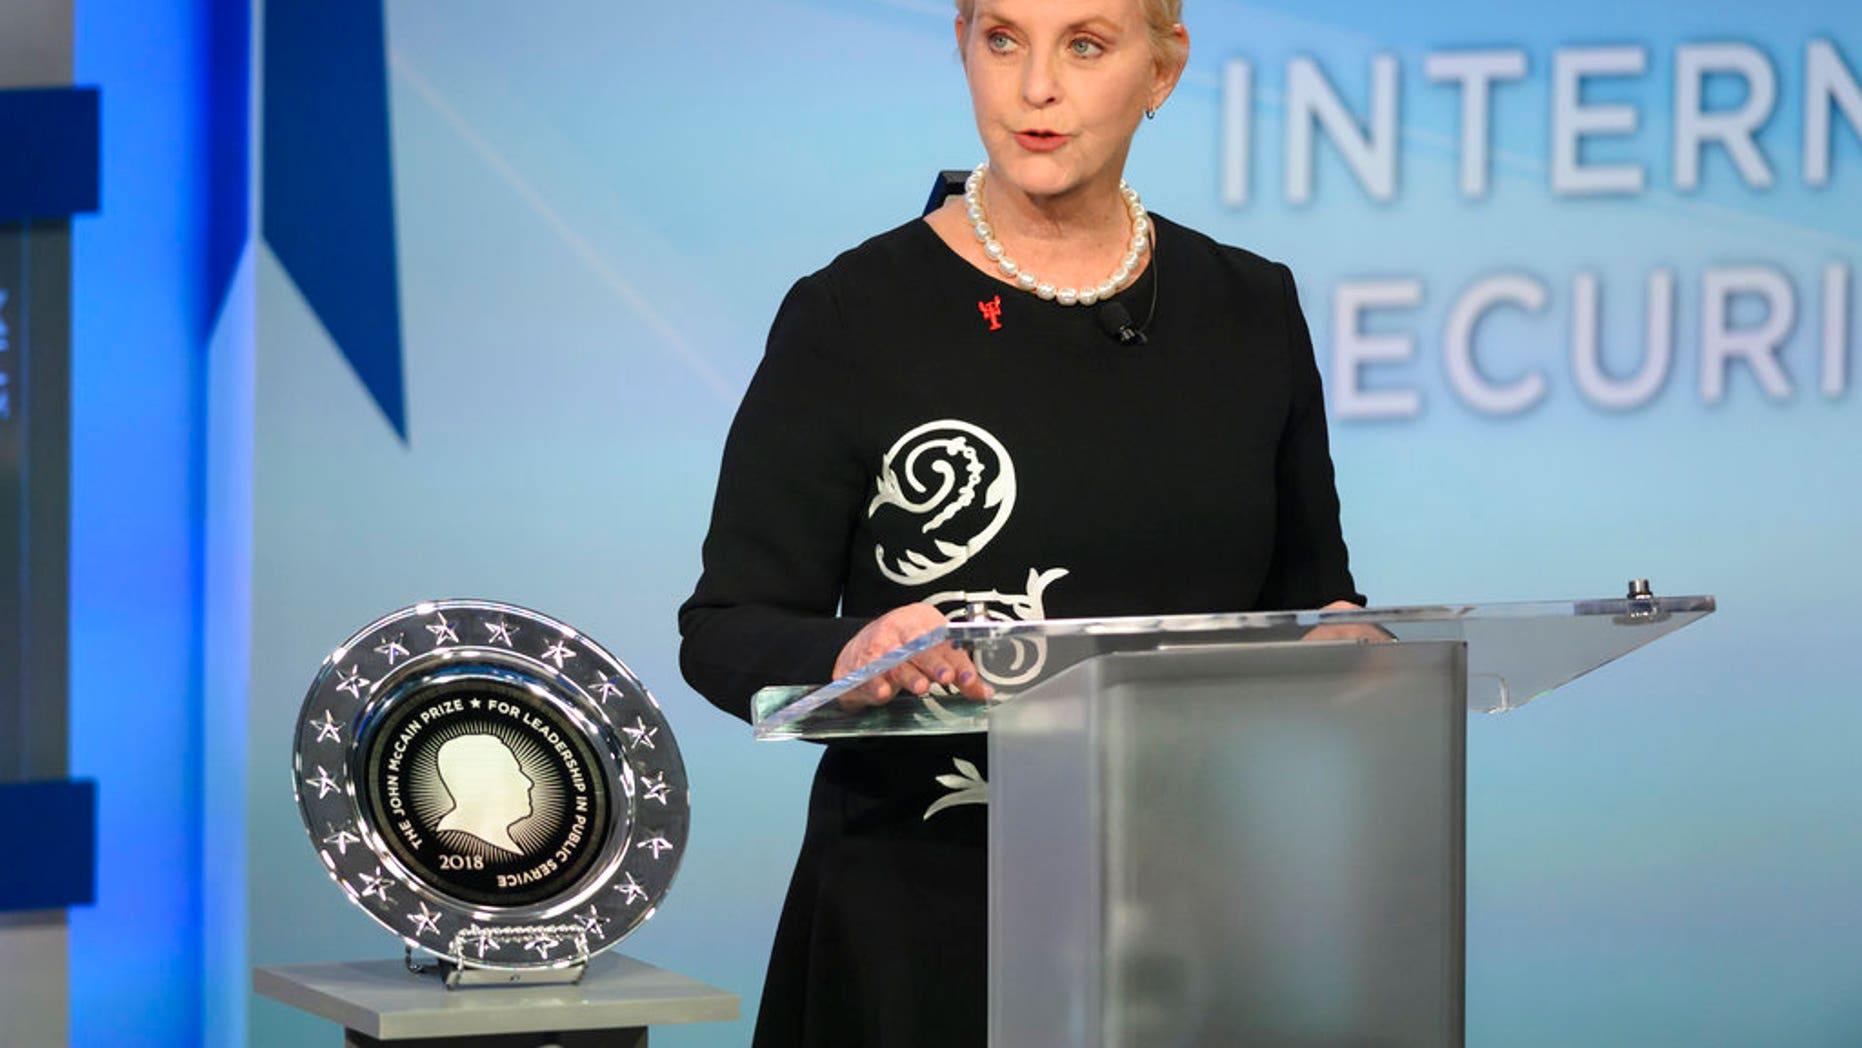 Cindy McCain pauses while presenting the inaugural John McCain Prize for Leadership in Public Service to the People of the island of Lesbos, Greece, at the Halifax International Security Forum in Halifax. (Darren Calabrese /The Canadian Press via AP)